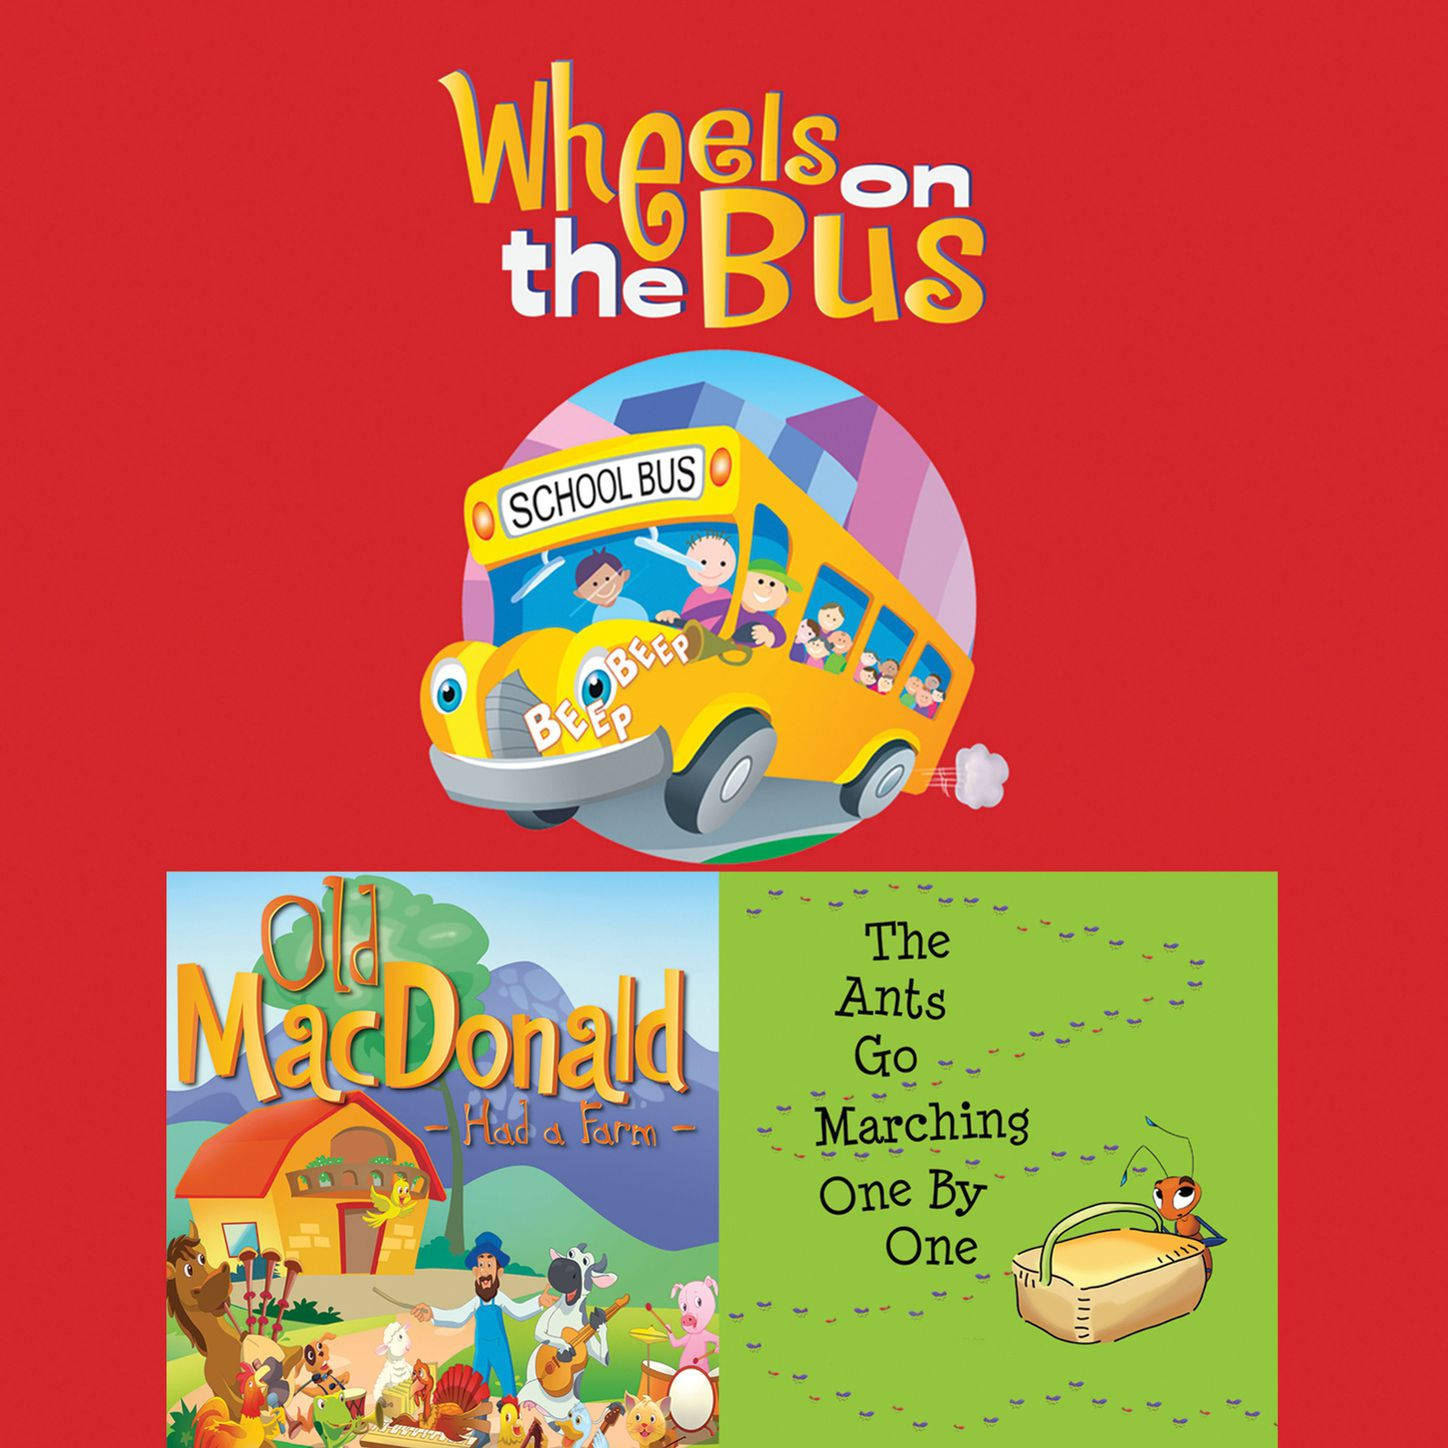 Frankie O'Connor Wheels On The Bus / Old MacDonald Had a Farm / The Ants Go Marching One By One (Unabridged) peppa pig the wheels on the bus board book